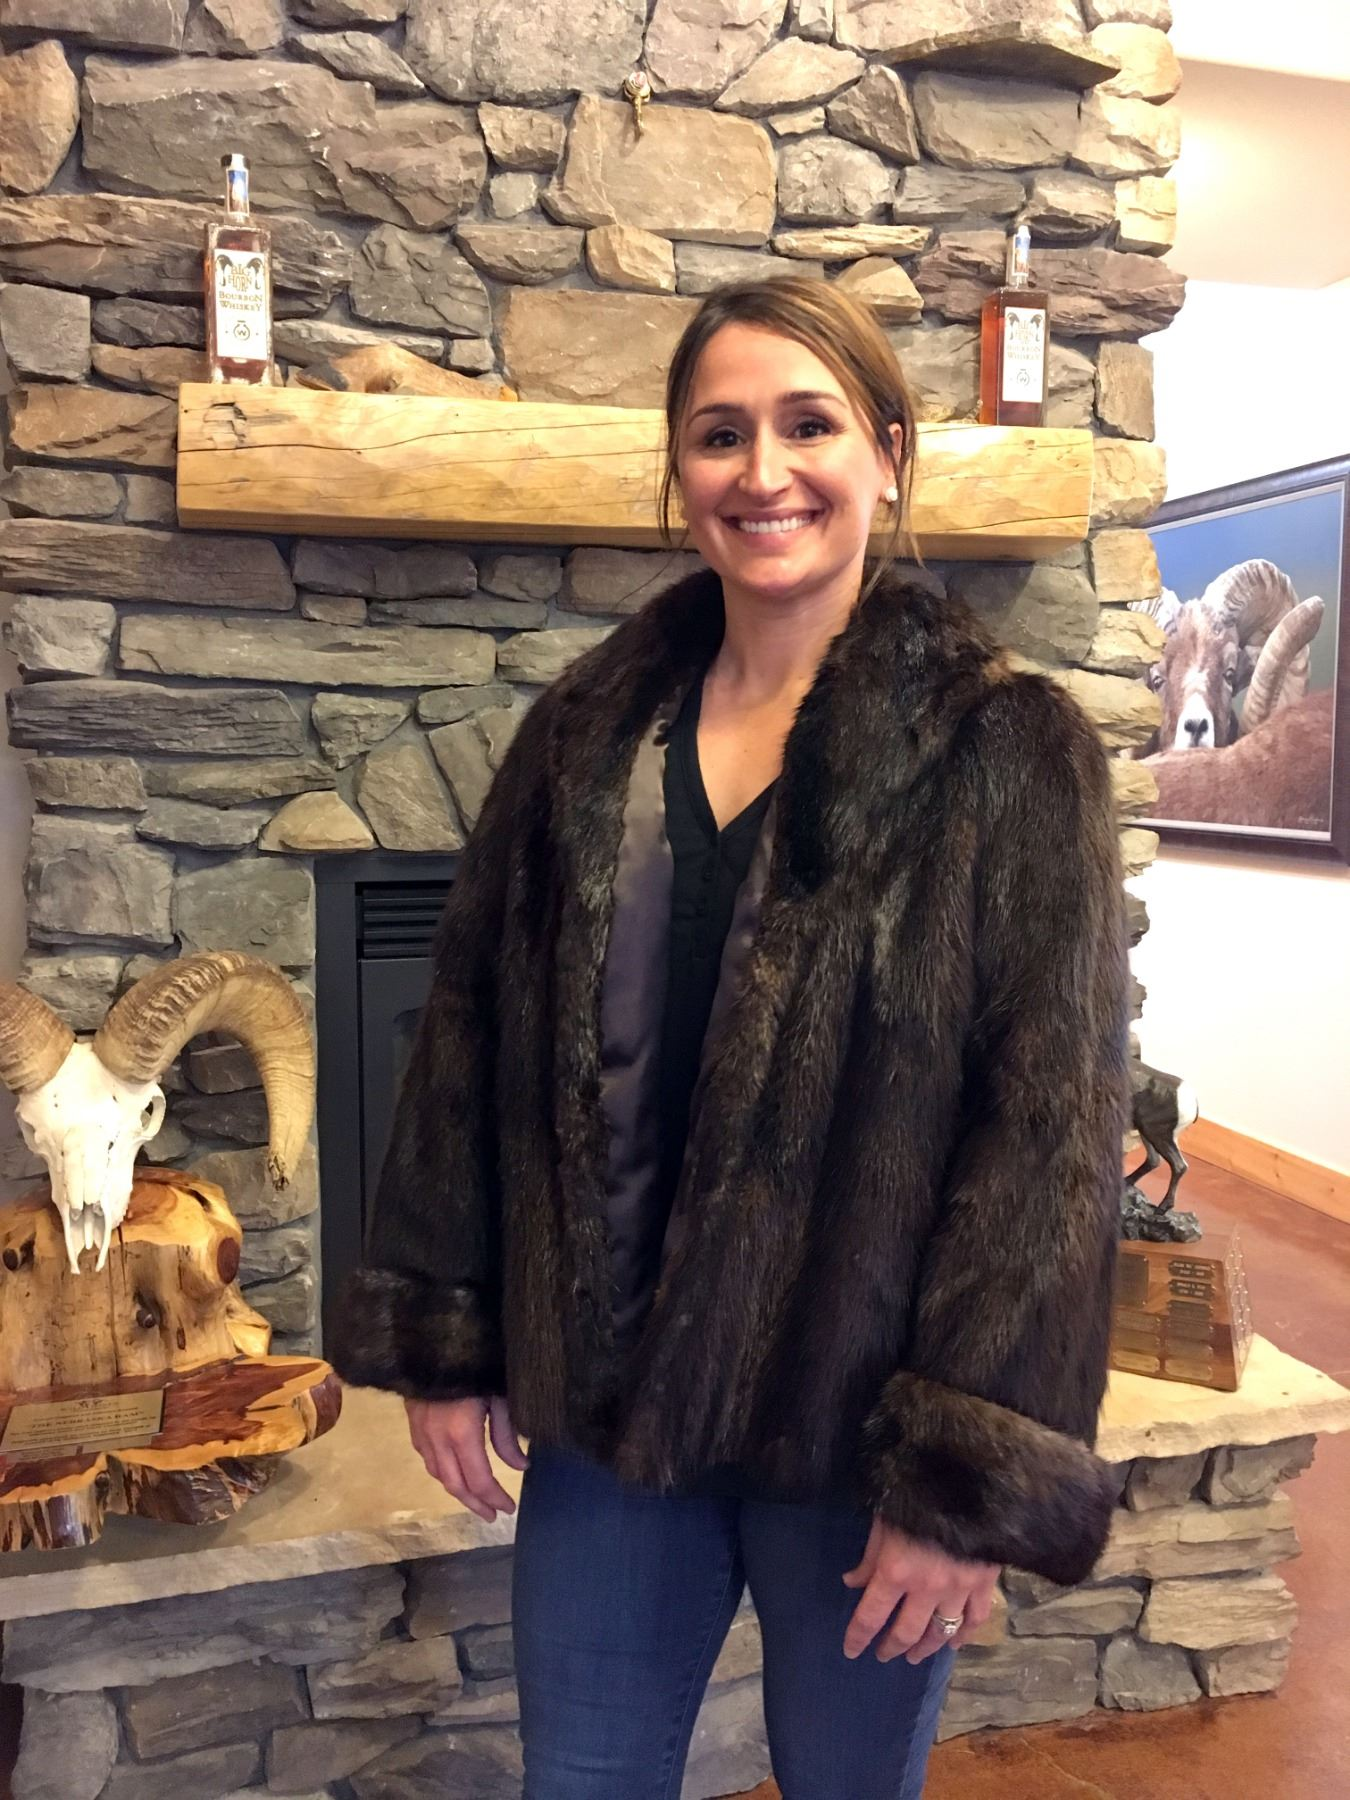 NATURAL BEAVER JACKET - SIZE 6 (NON-EXCHANGEABLE)